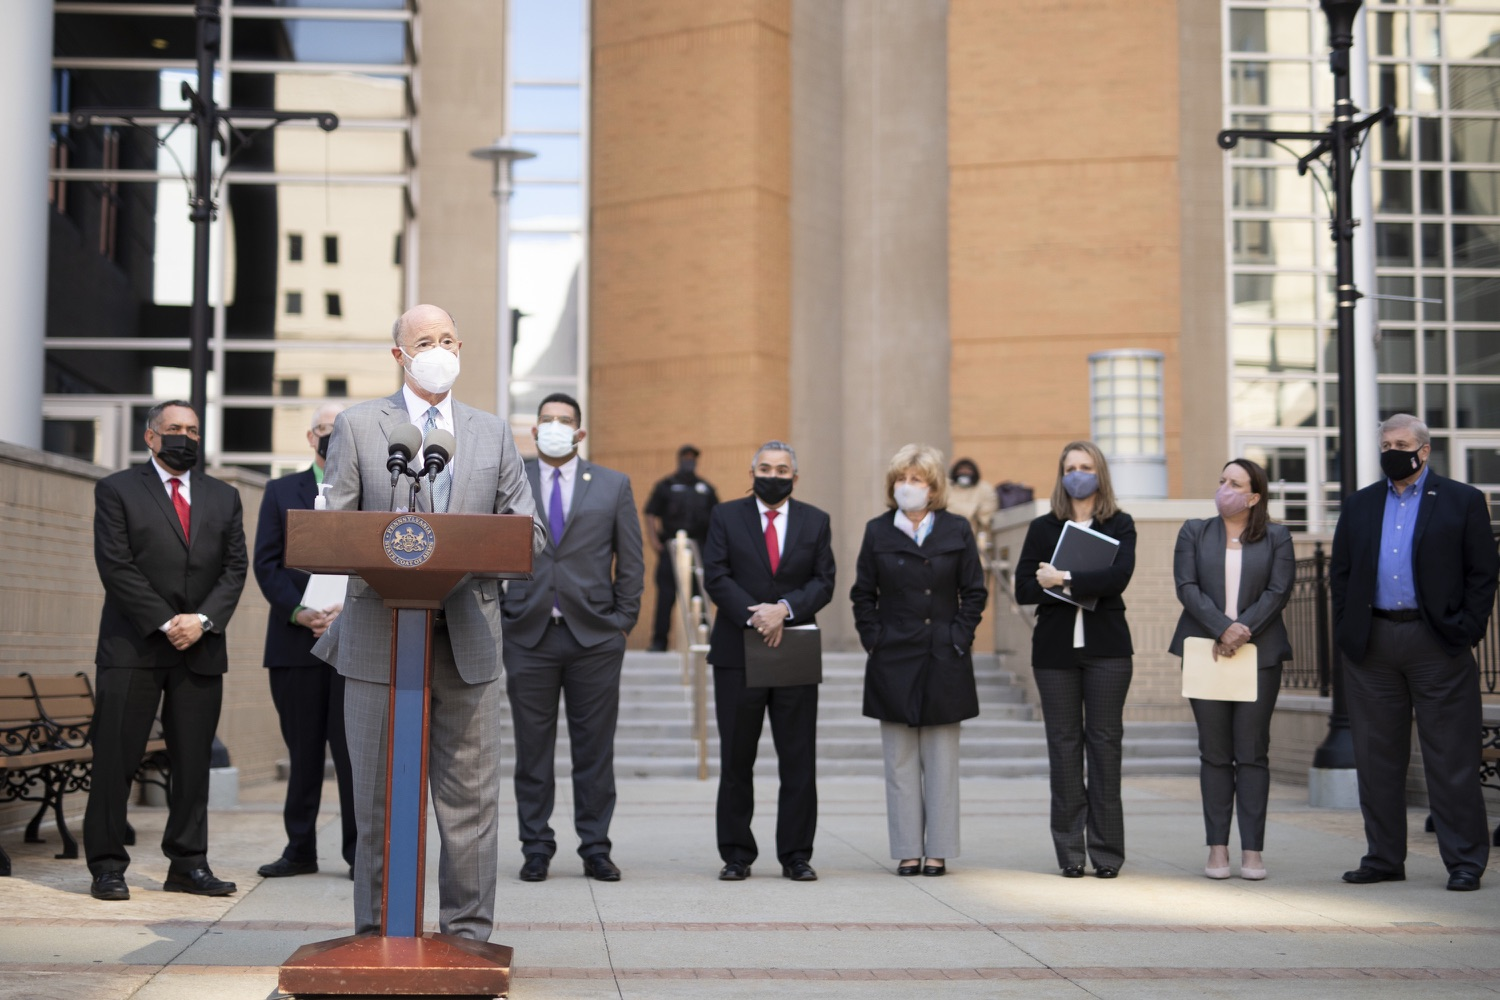 """<a href=""""https://filesource.wostreaming.net/commonwealthofpa/photo/18688_gov_vaccines_dz_006.jpg"""" target=""""_blank"""">⇣Download Photo<br></a>Pennsylvania Governor Tom Wolf speaking with the press.  As Pennsylvania continues its accelerated COVID-19 vaccination plan, Pennsylvanians who are not able to leave their homes must be reached, and various state agencies and community groups are helping. Governor Tom Wolf visited Reading to talk about how the state and its partners are using various means to reach people not able to leave home to be vaccinated against COVID-19.  APRIL 26, 2021 - READING, PA"""